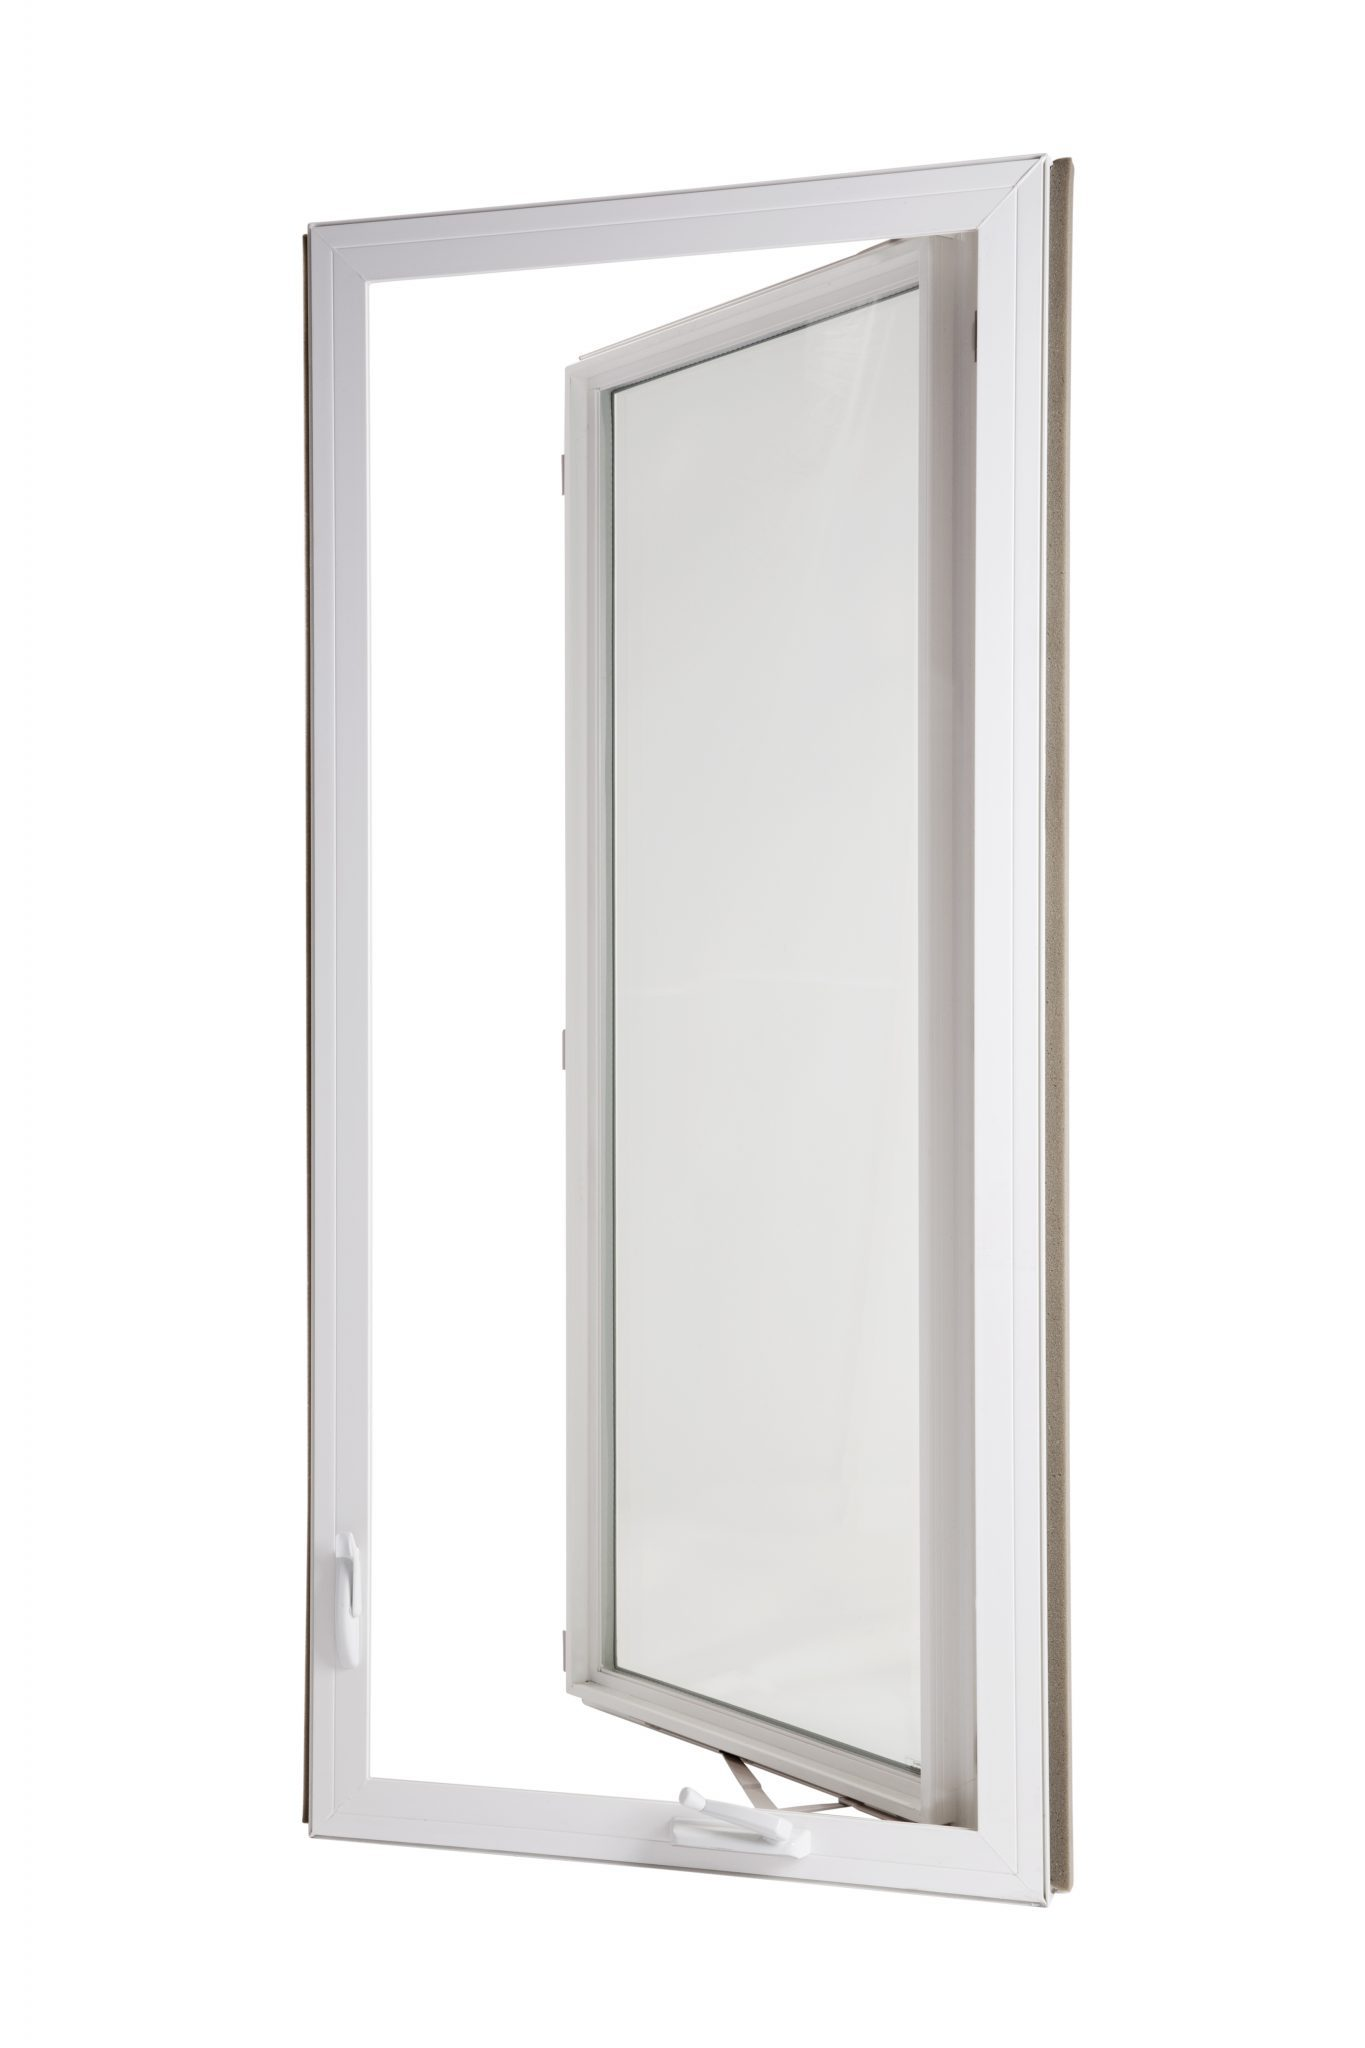 an open casement window with white vinly